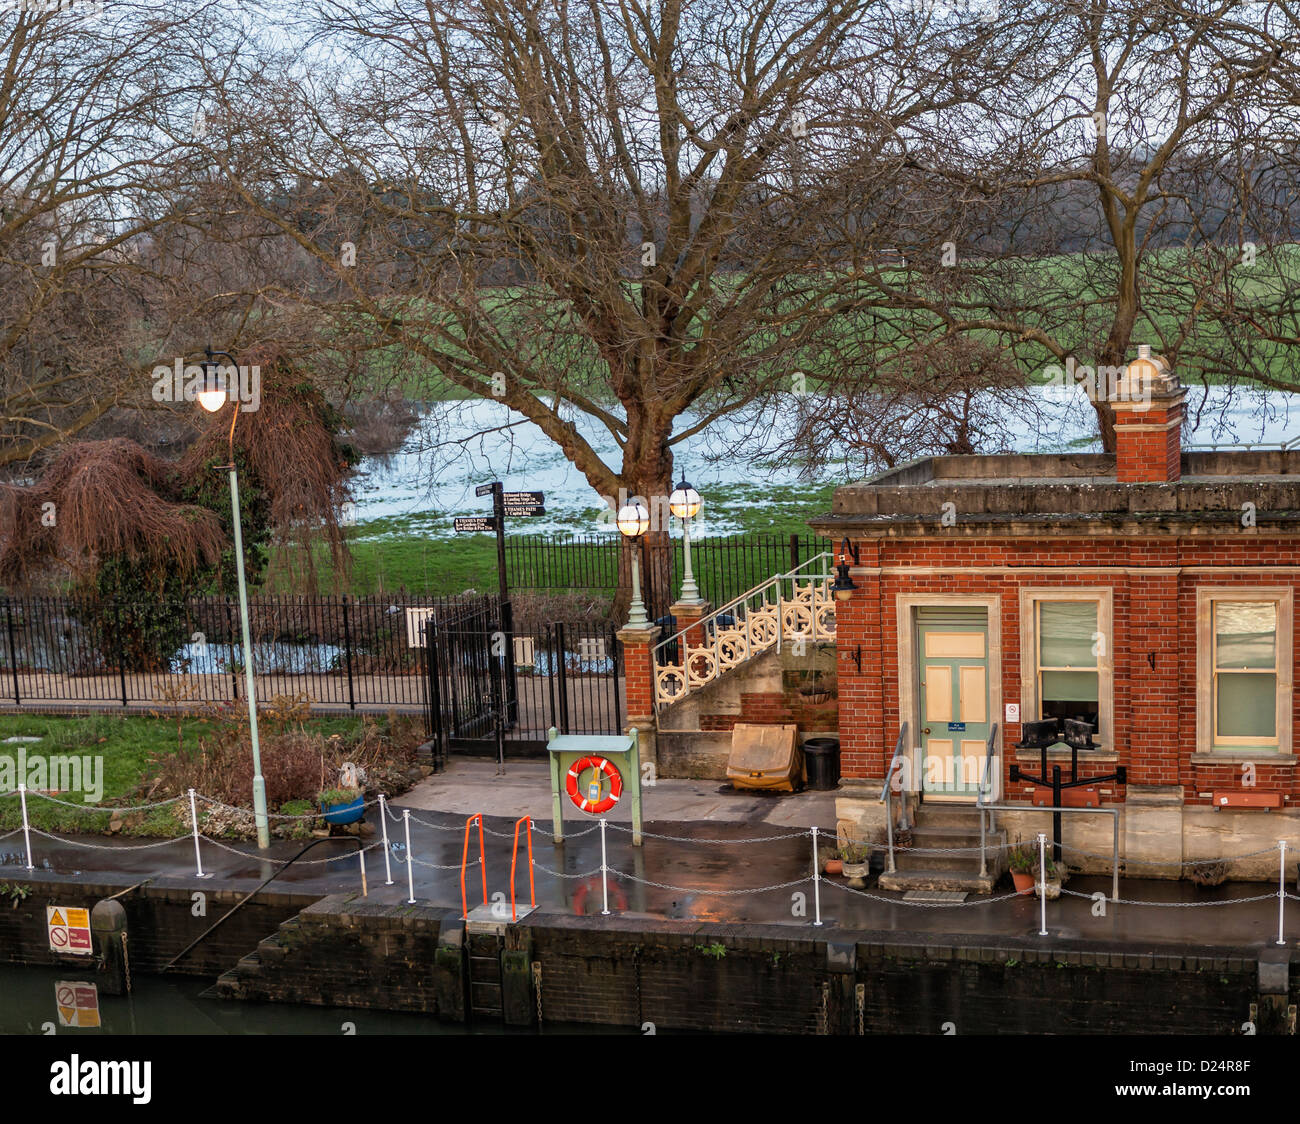 Lock keeper's office at the Richmond Lock and footbridge with the Old Deer Park in the background - Richmond - Stock Image